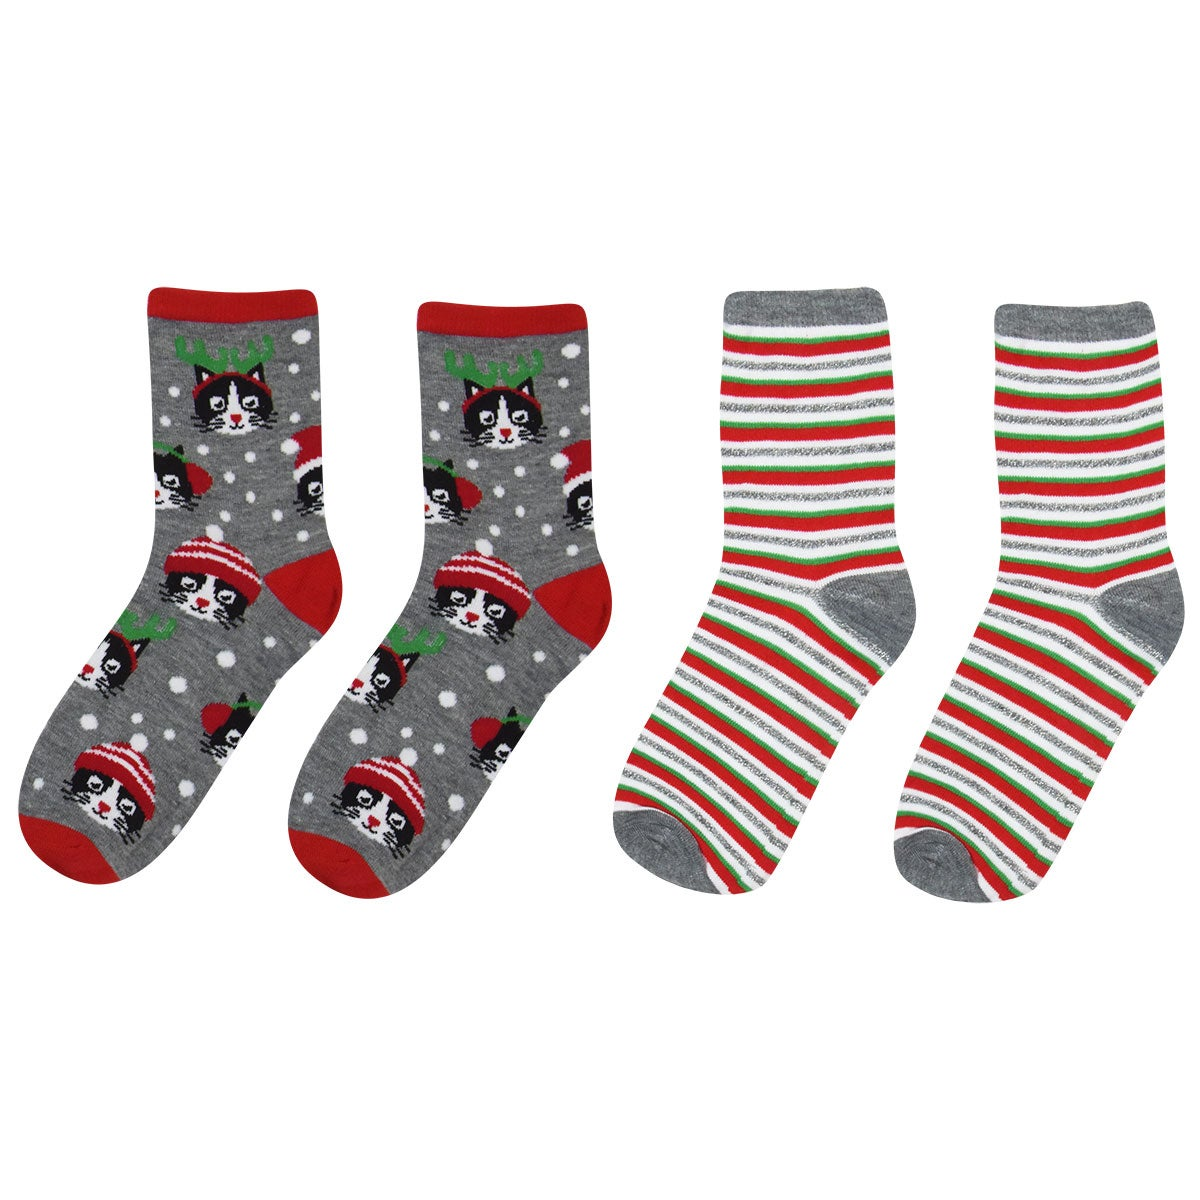 Capelli / GMA Accessories Meowy Holiday 2-pack Socks in Grey Multi